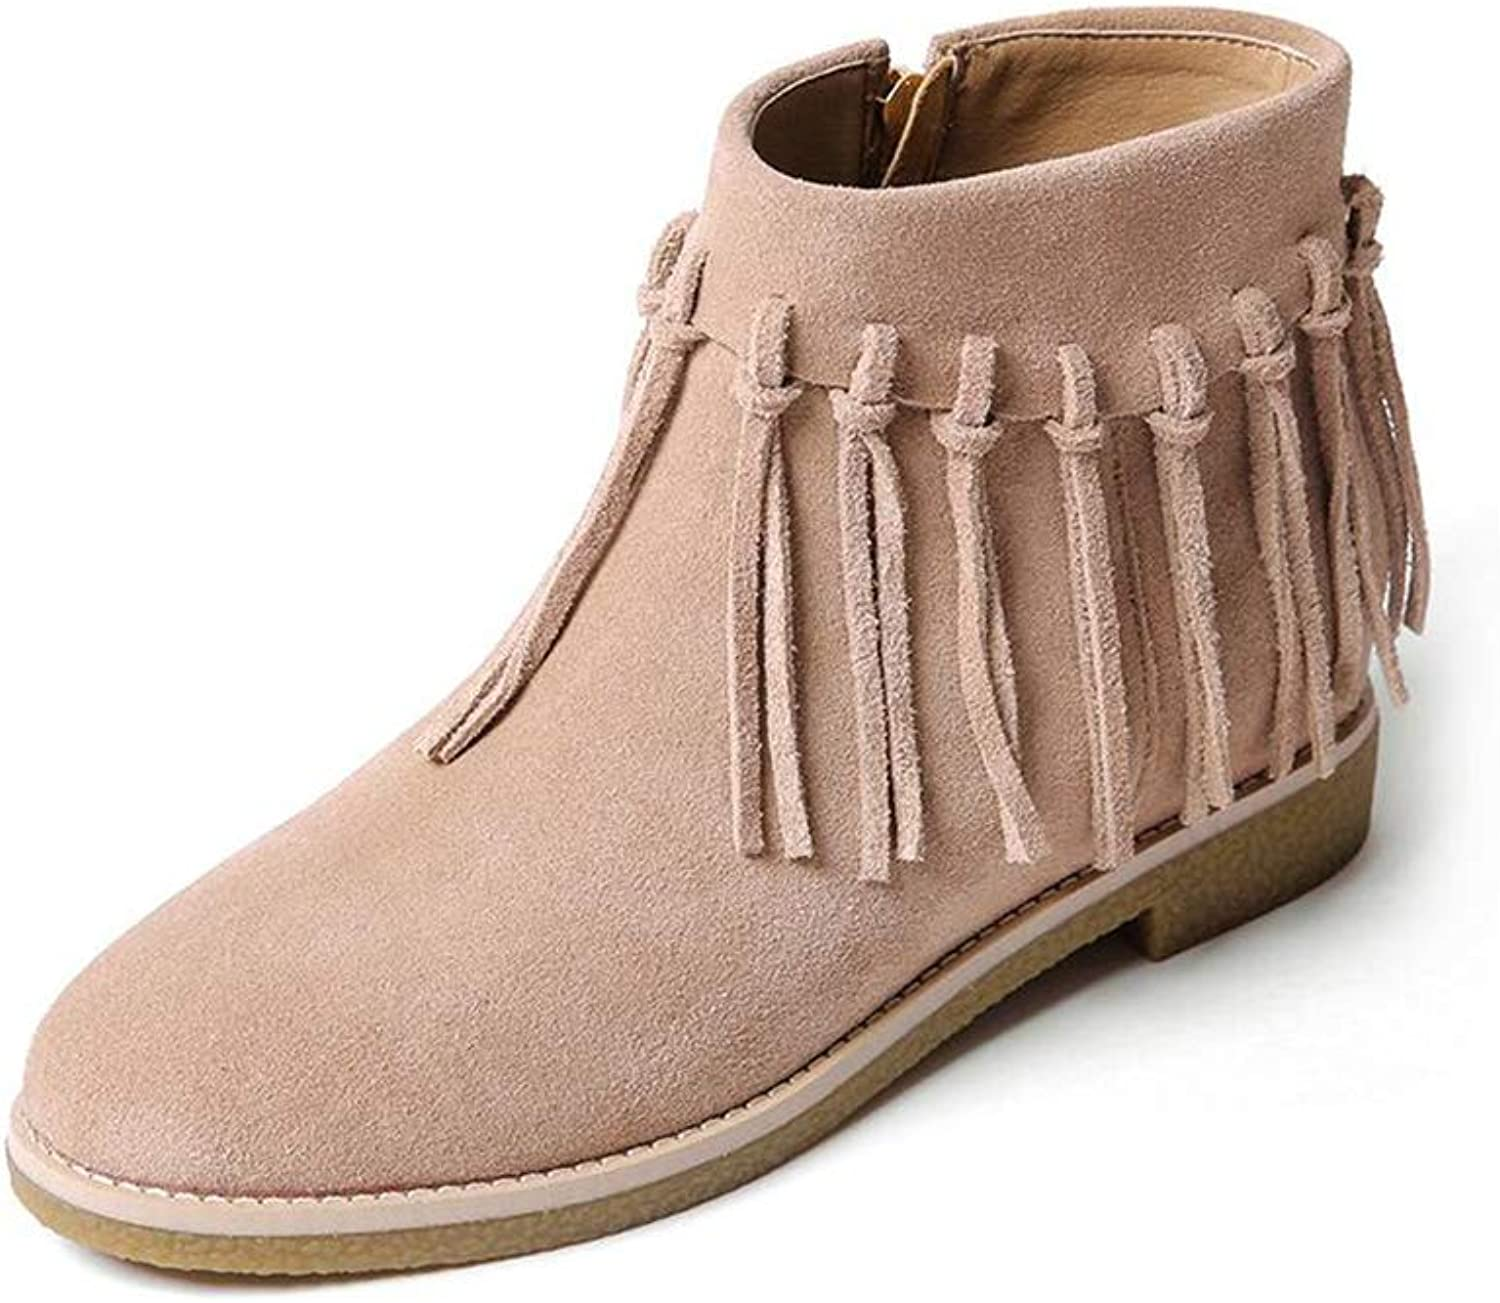 Xiaolin Women's Fringe High Top Ankle Booties High Heel Western Cowboy Boot Booties Martin Boots (color   A, Size   US5 EU35 UK3 CN34)